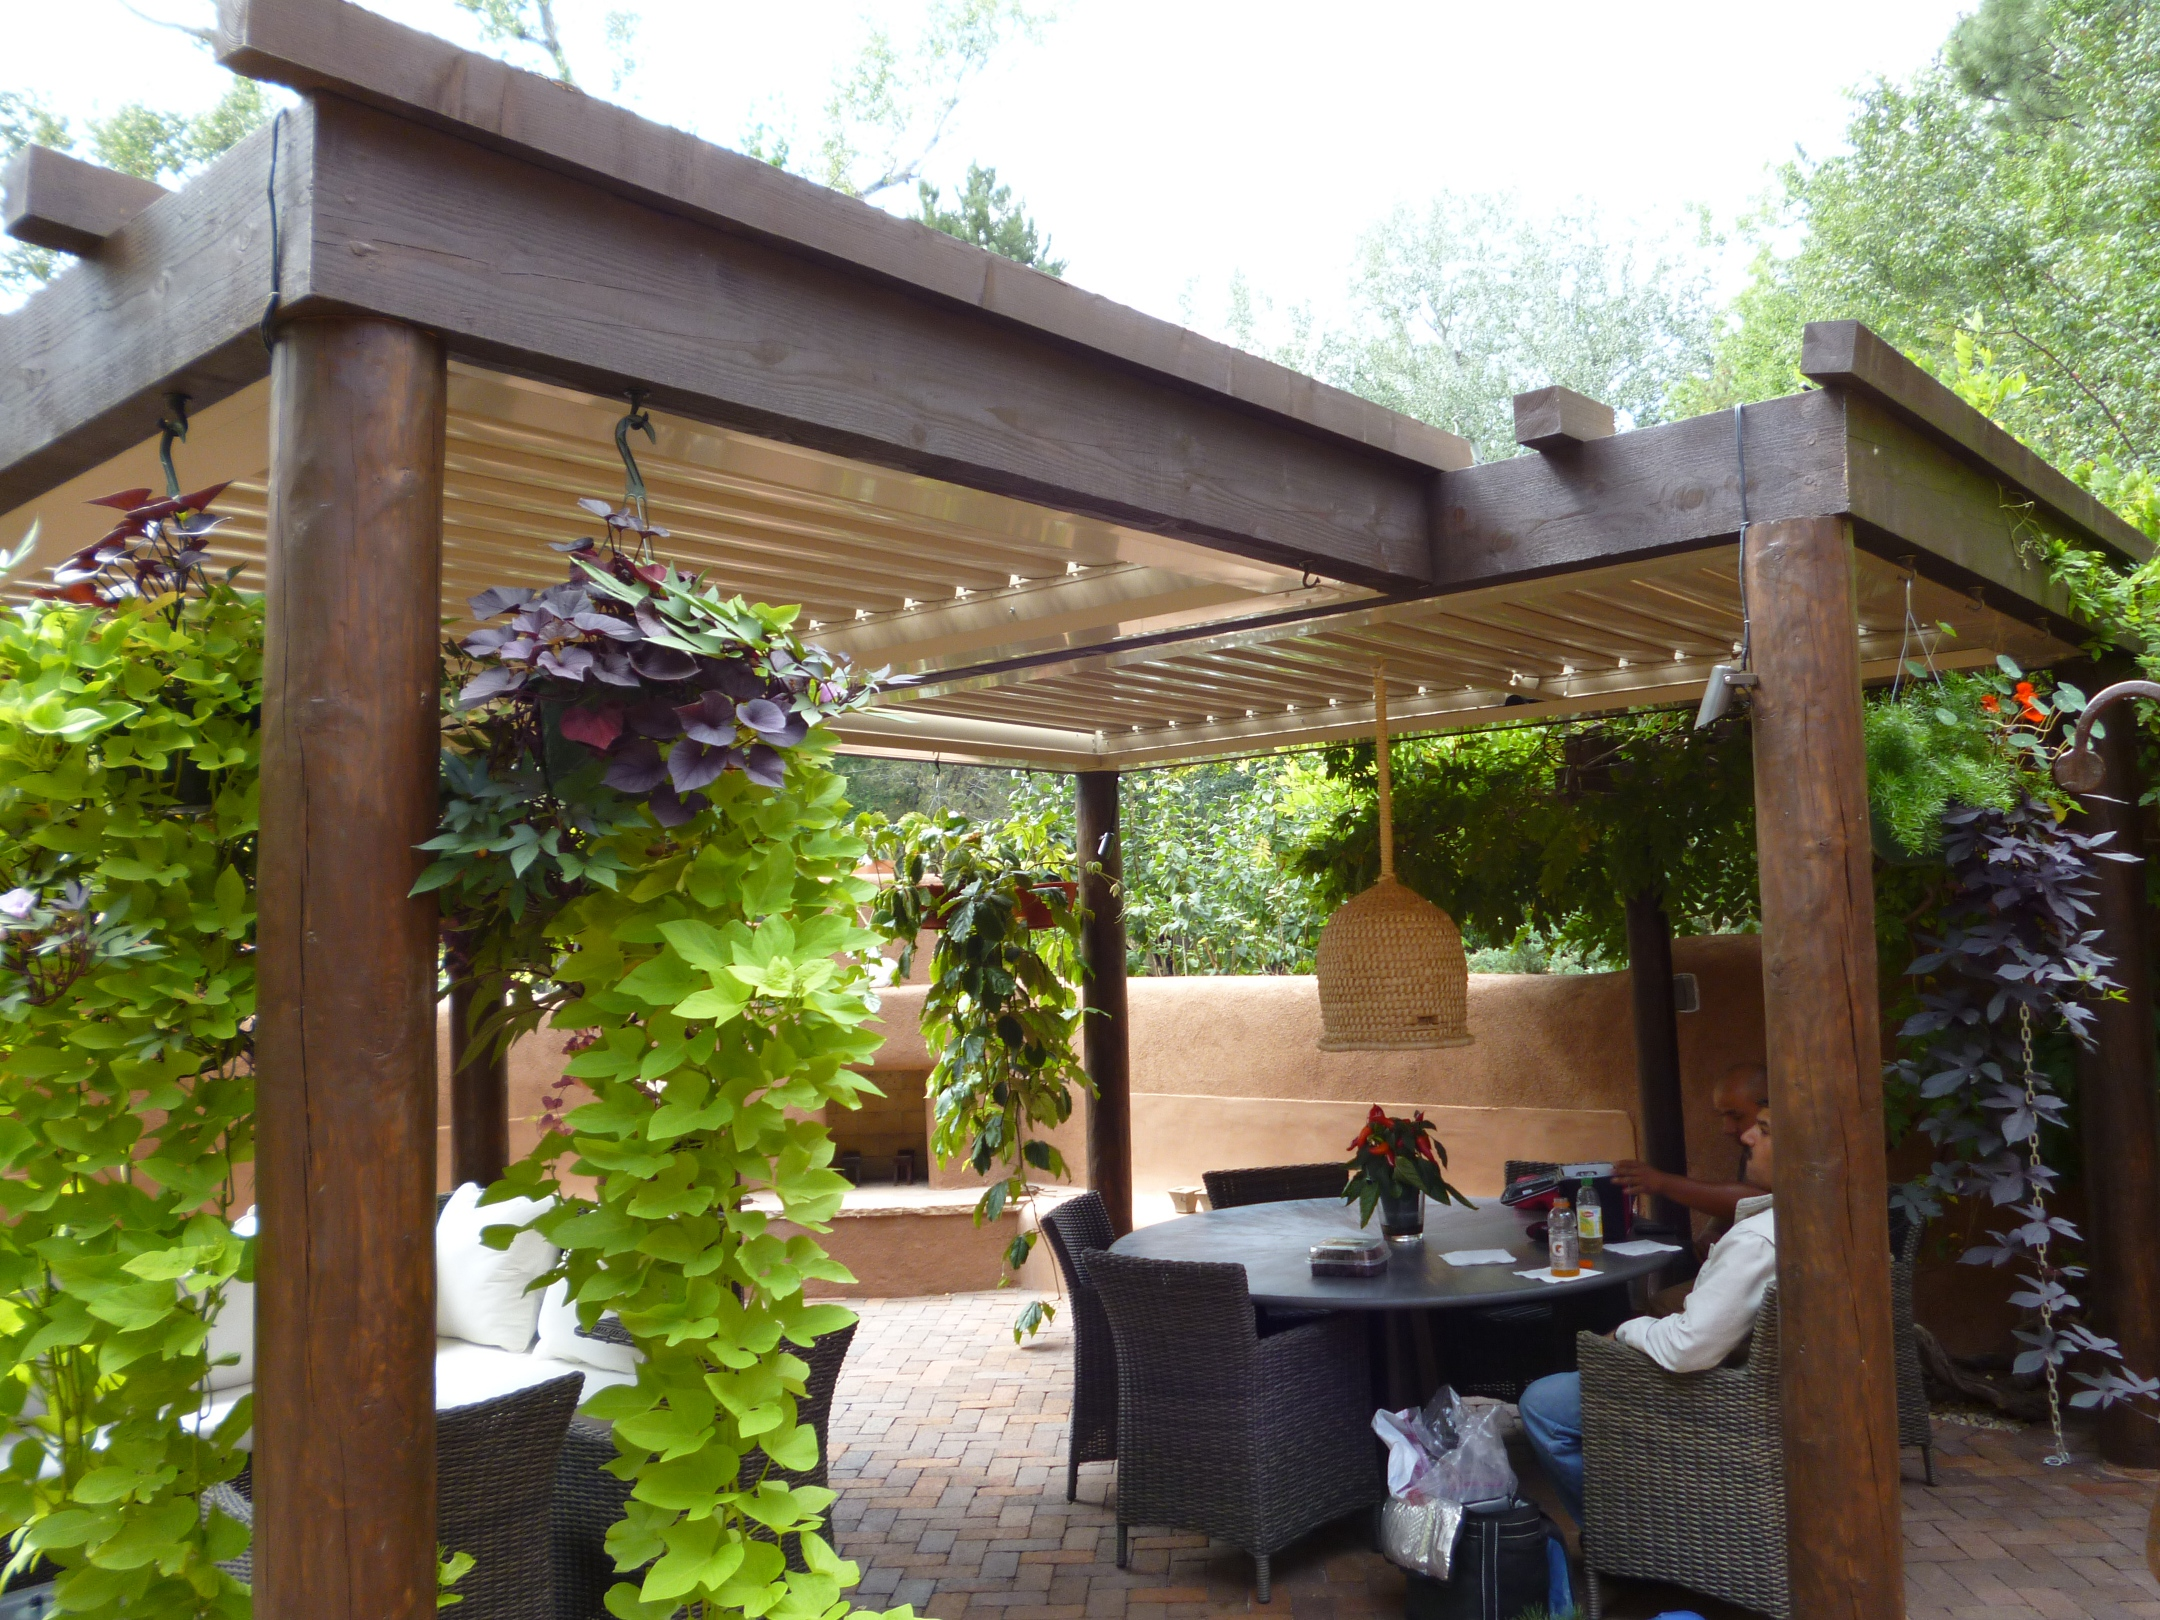 Natural Wooden Patio Covers - HomesFeed on Covered Patio Design Ideas id=66019